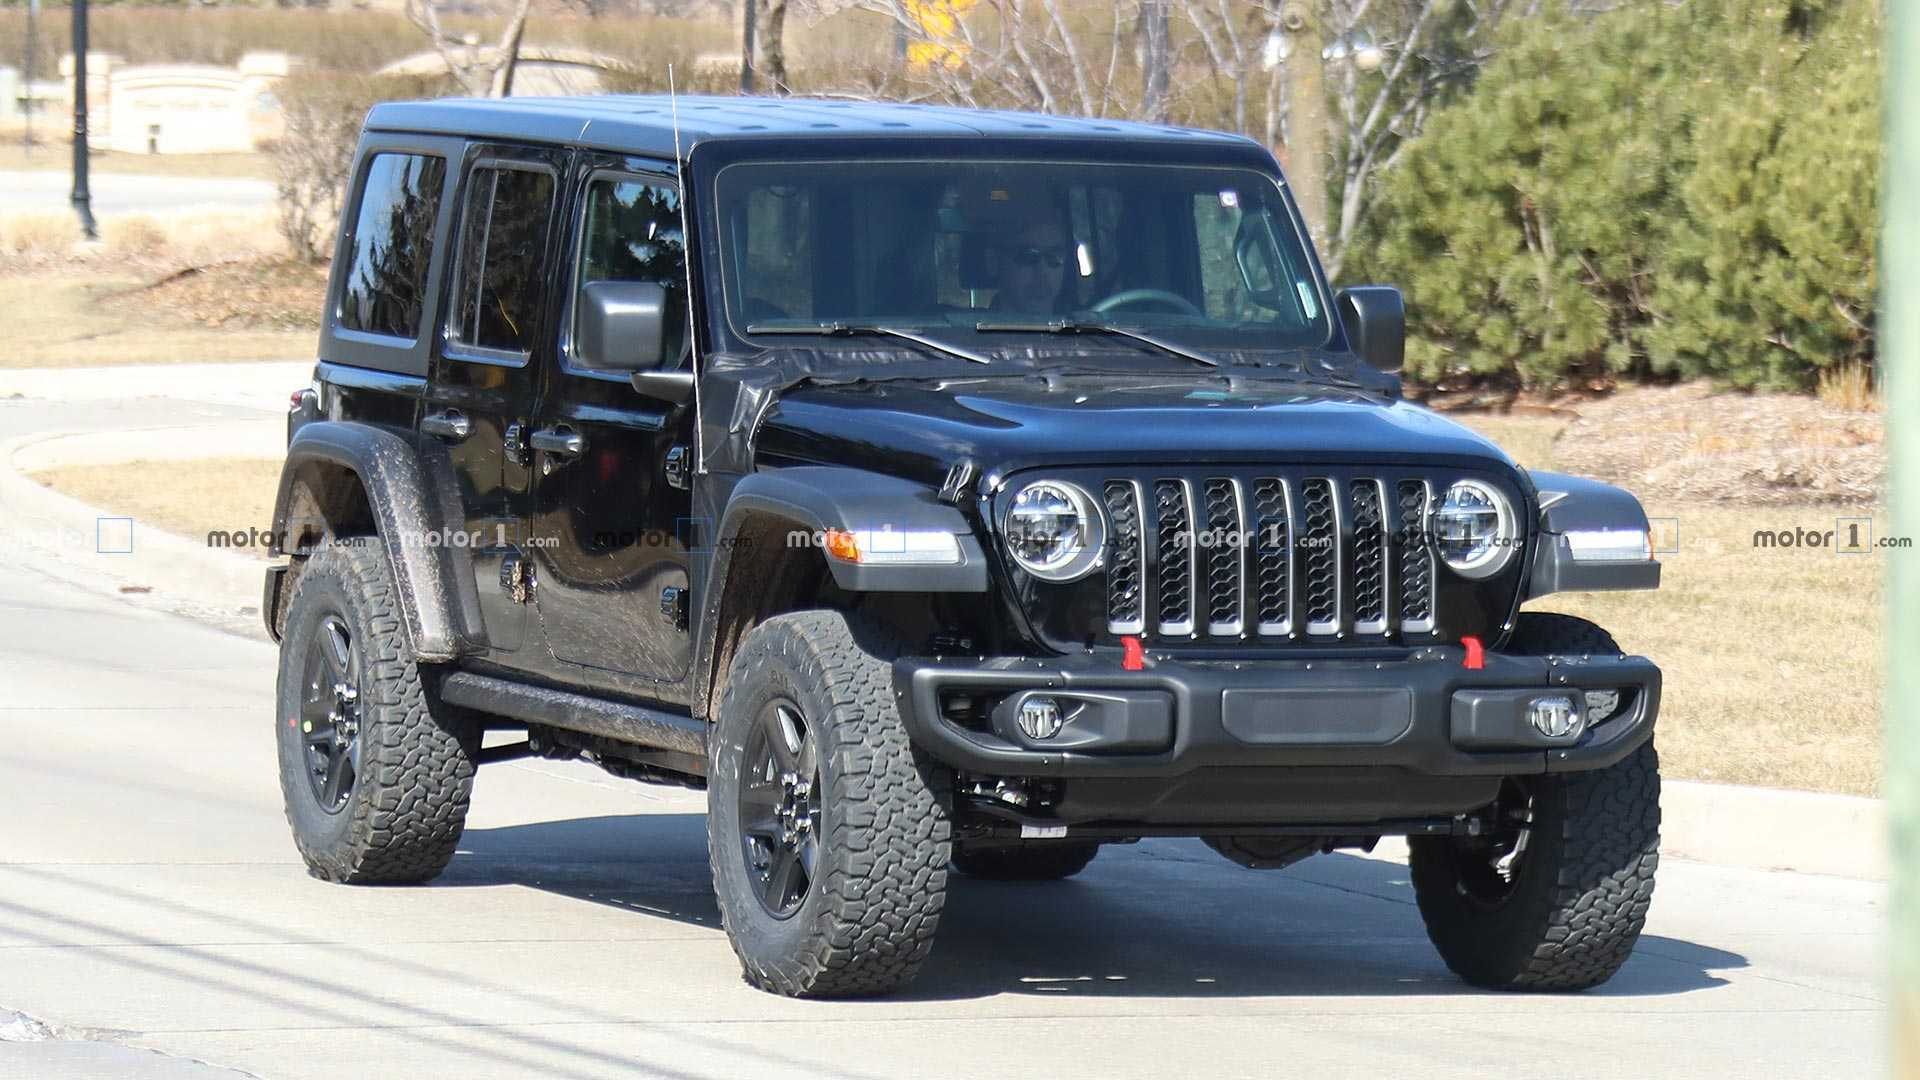 50 The Best 2020 Jeep Wrangler Plug In Hybrid Overview